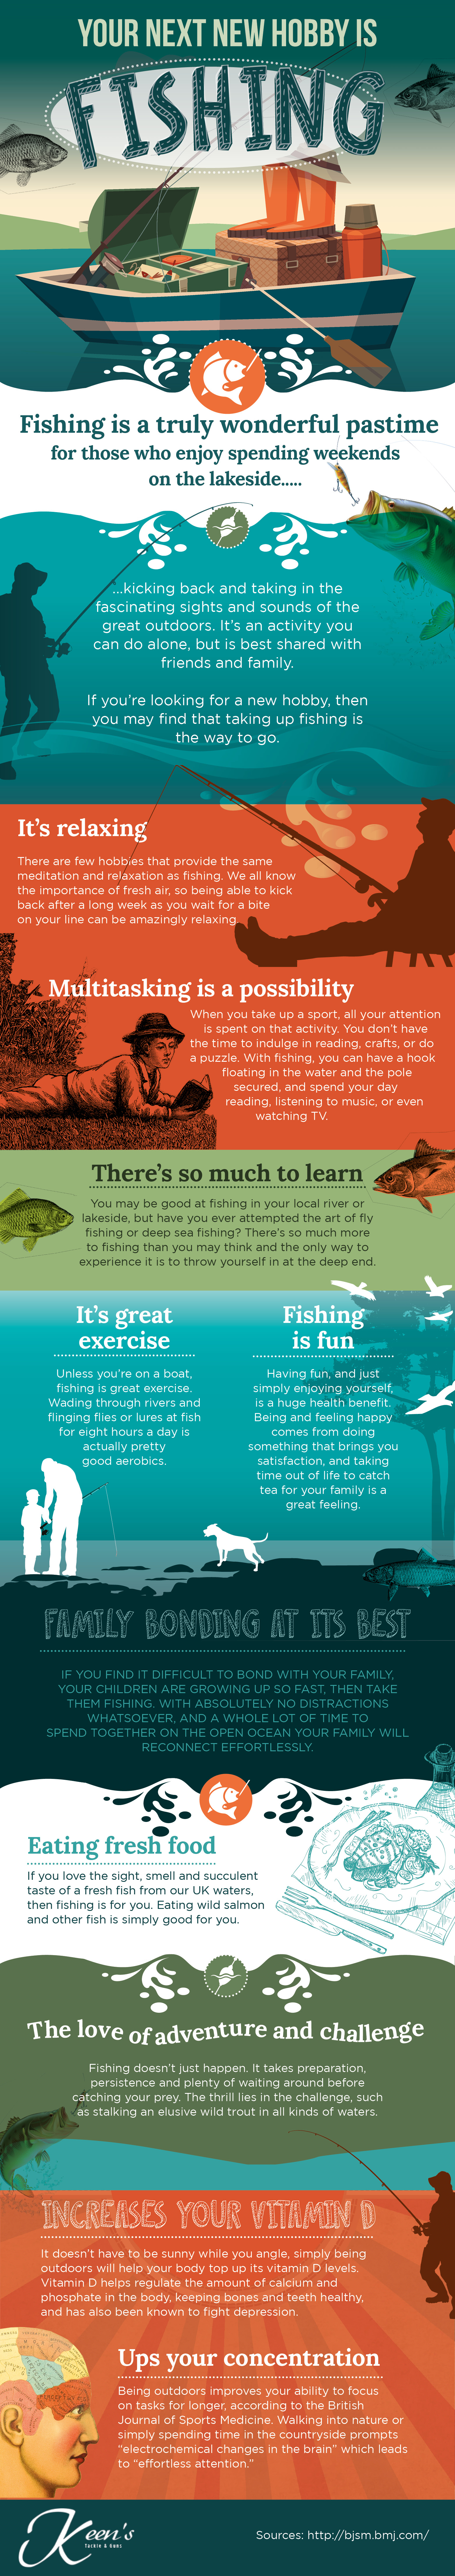 Why You Should Take Fishing up as a Hobby Infographic